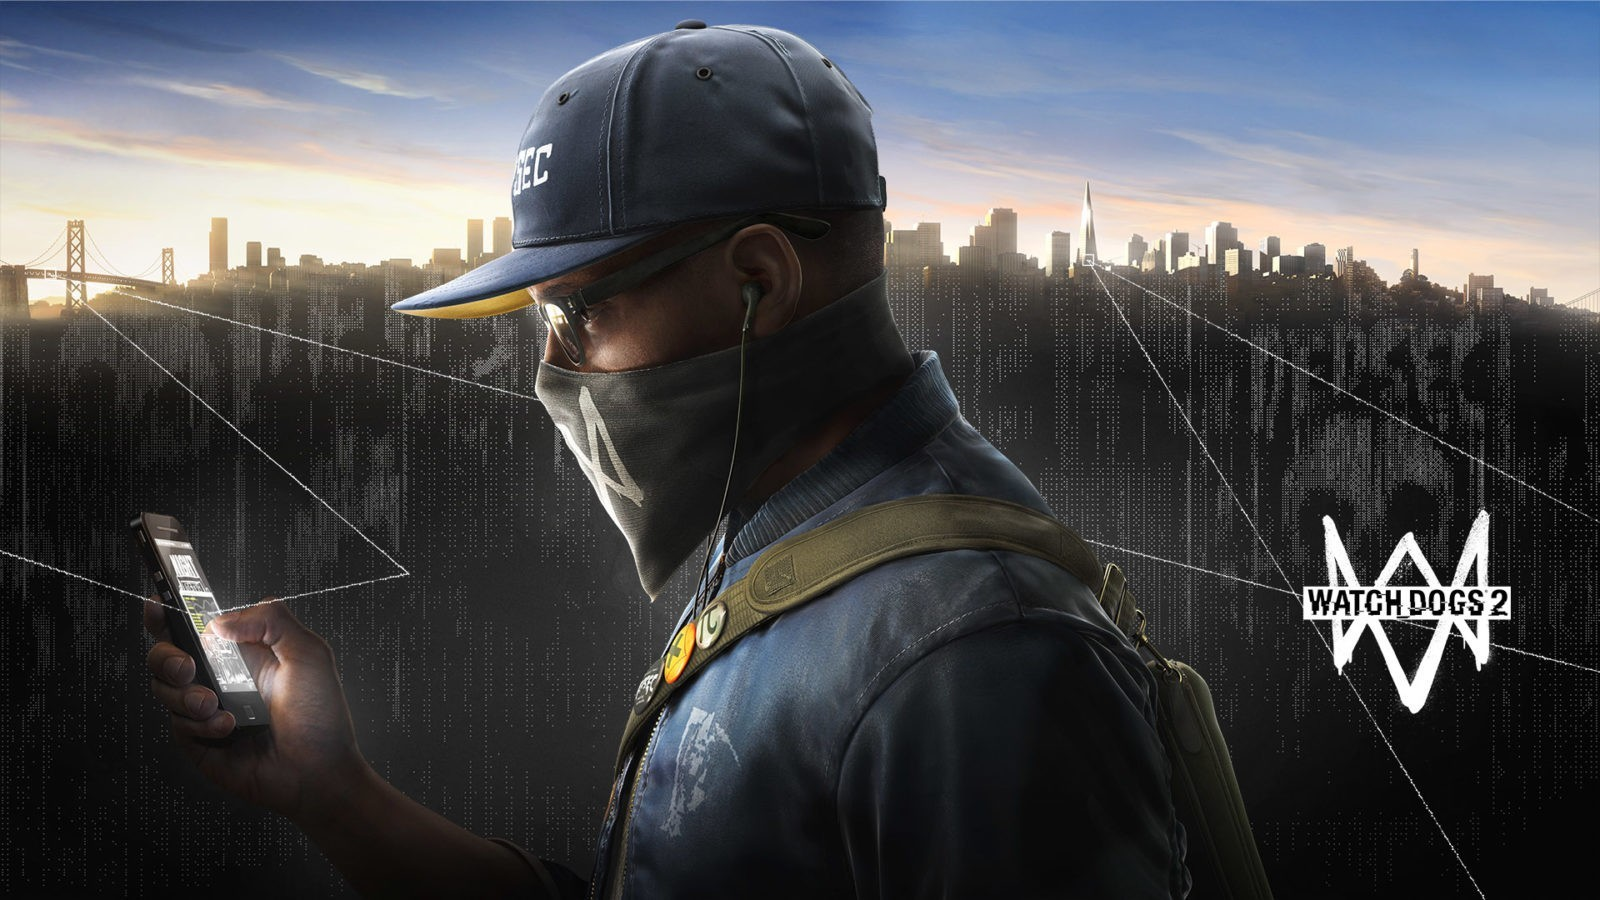 Watch Dogs 2 — гайд по взлому (хакингу)